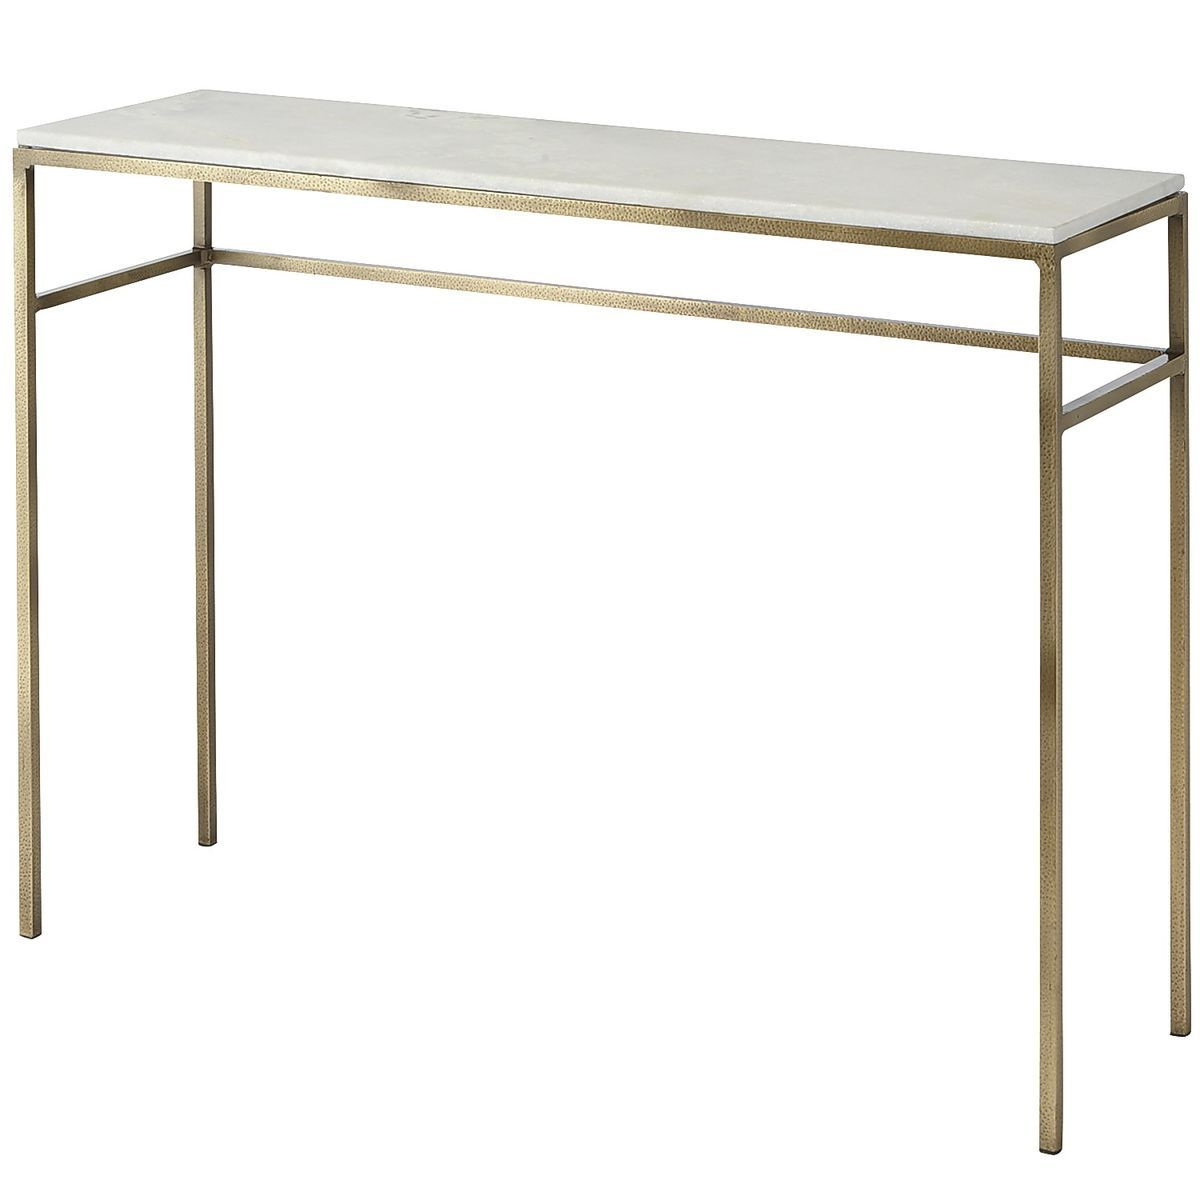 If You're Looking For A Way To Elevate Your Living Space, Ethel For Elke Marble Console Tables With Polished Aluminum Base (View 7 of 20)